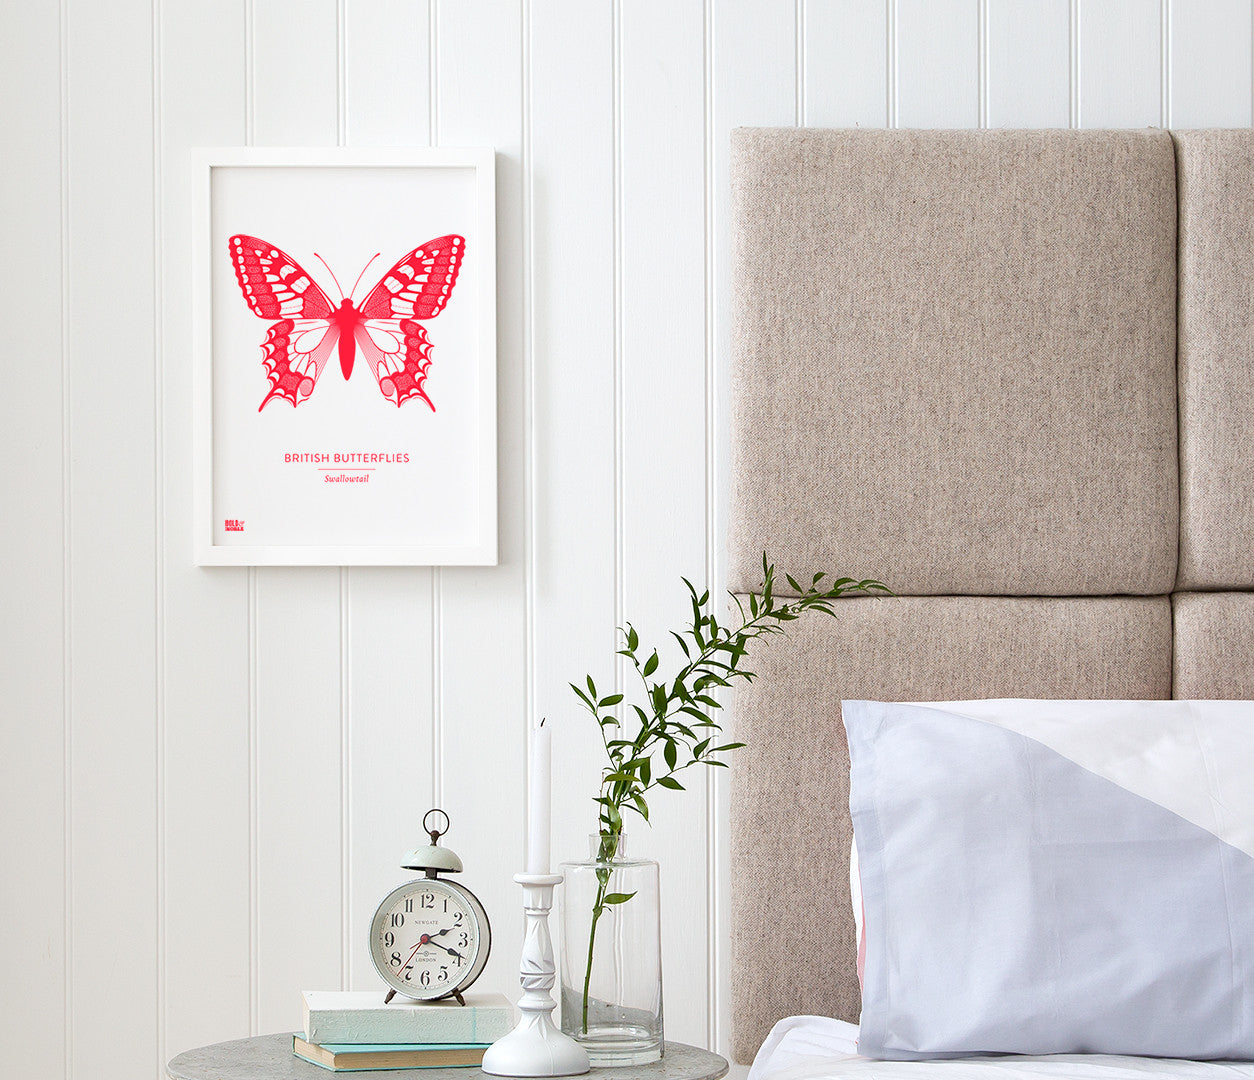 British Butterflies 'Swallowtail' Print in Neon Red